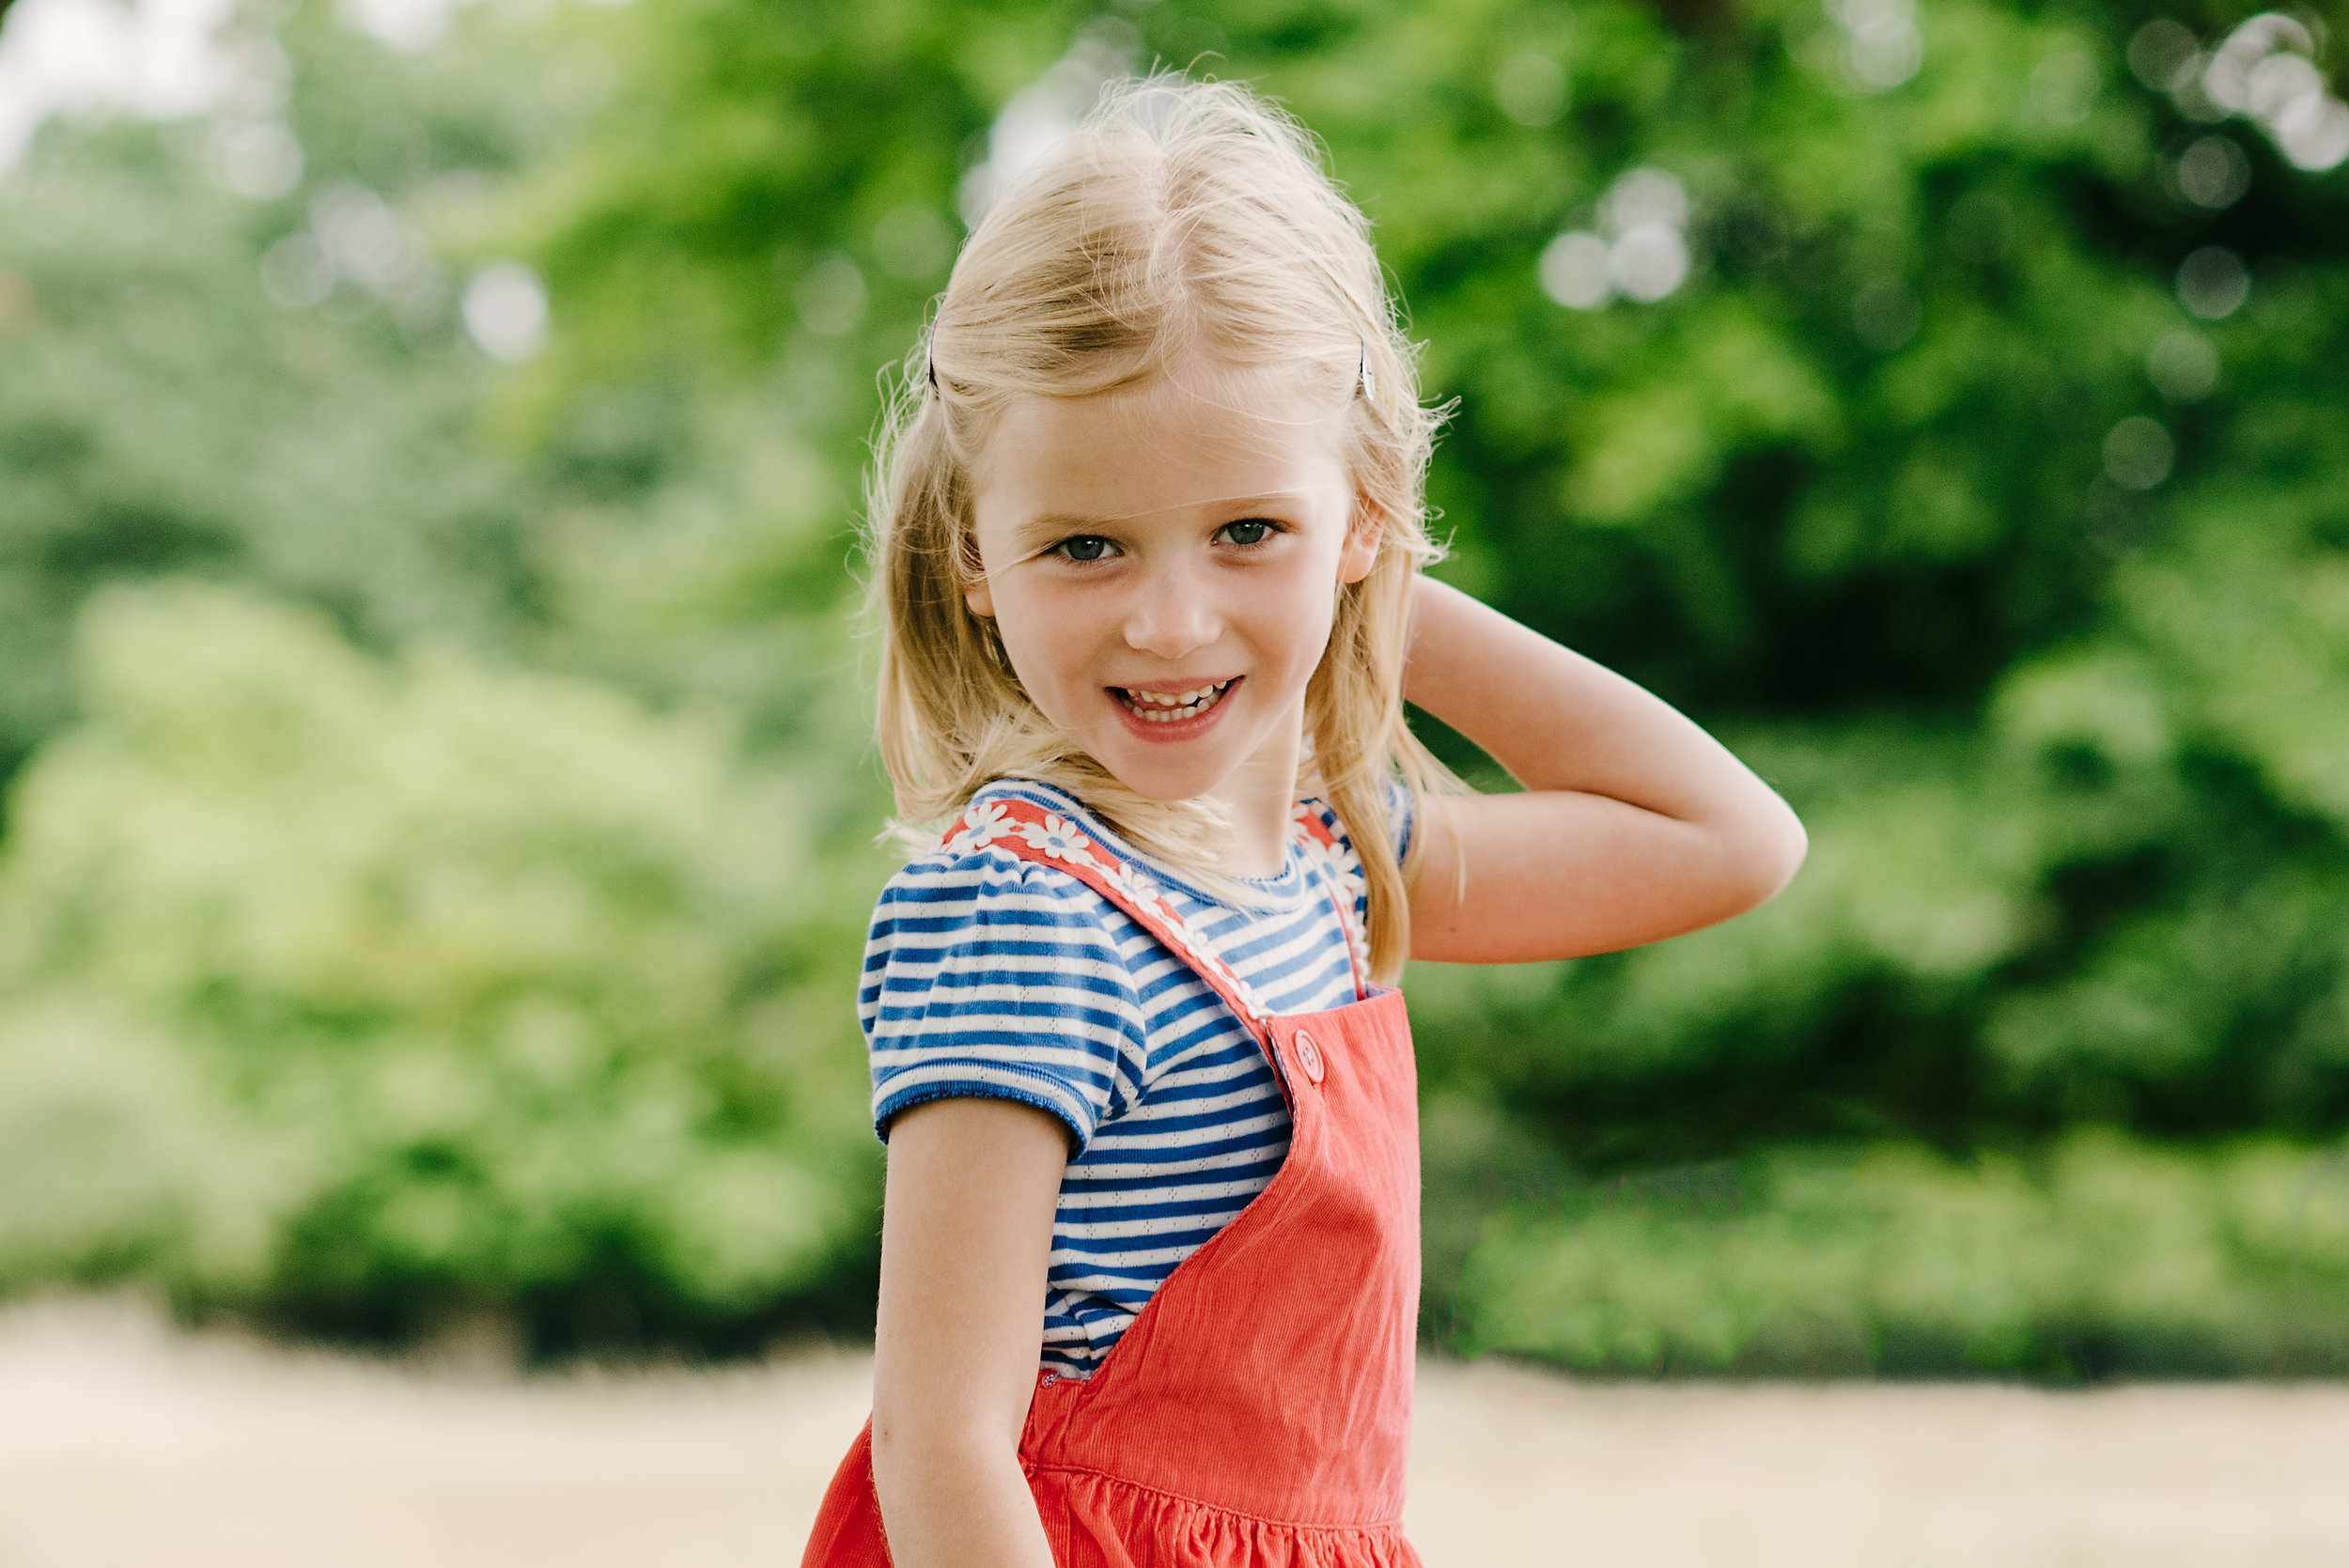 Little girl pretending to be a model in the park | Children's Photographer Aylesbury Buckinghamshire and Thame Oxfordshire